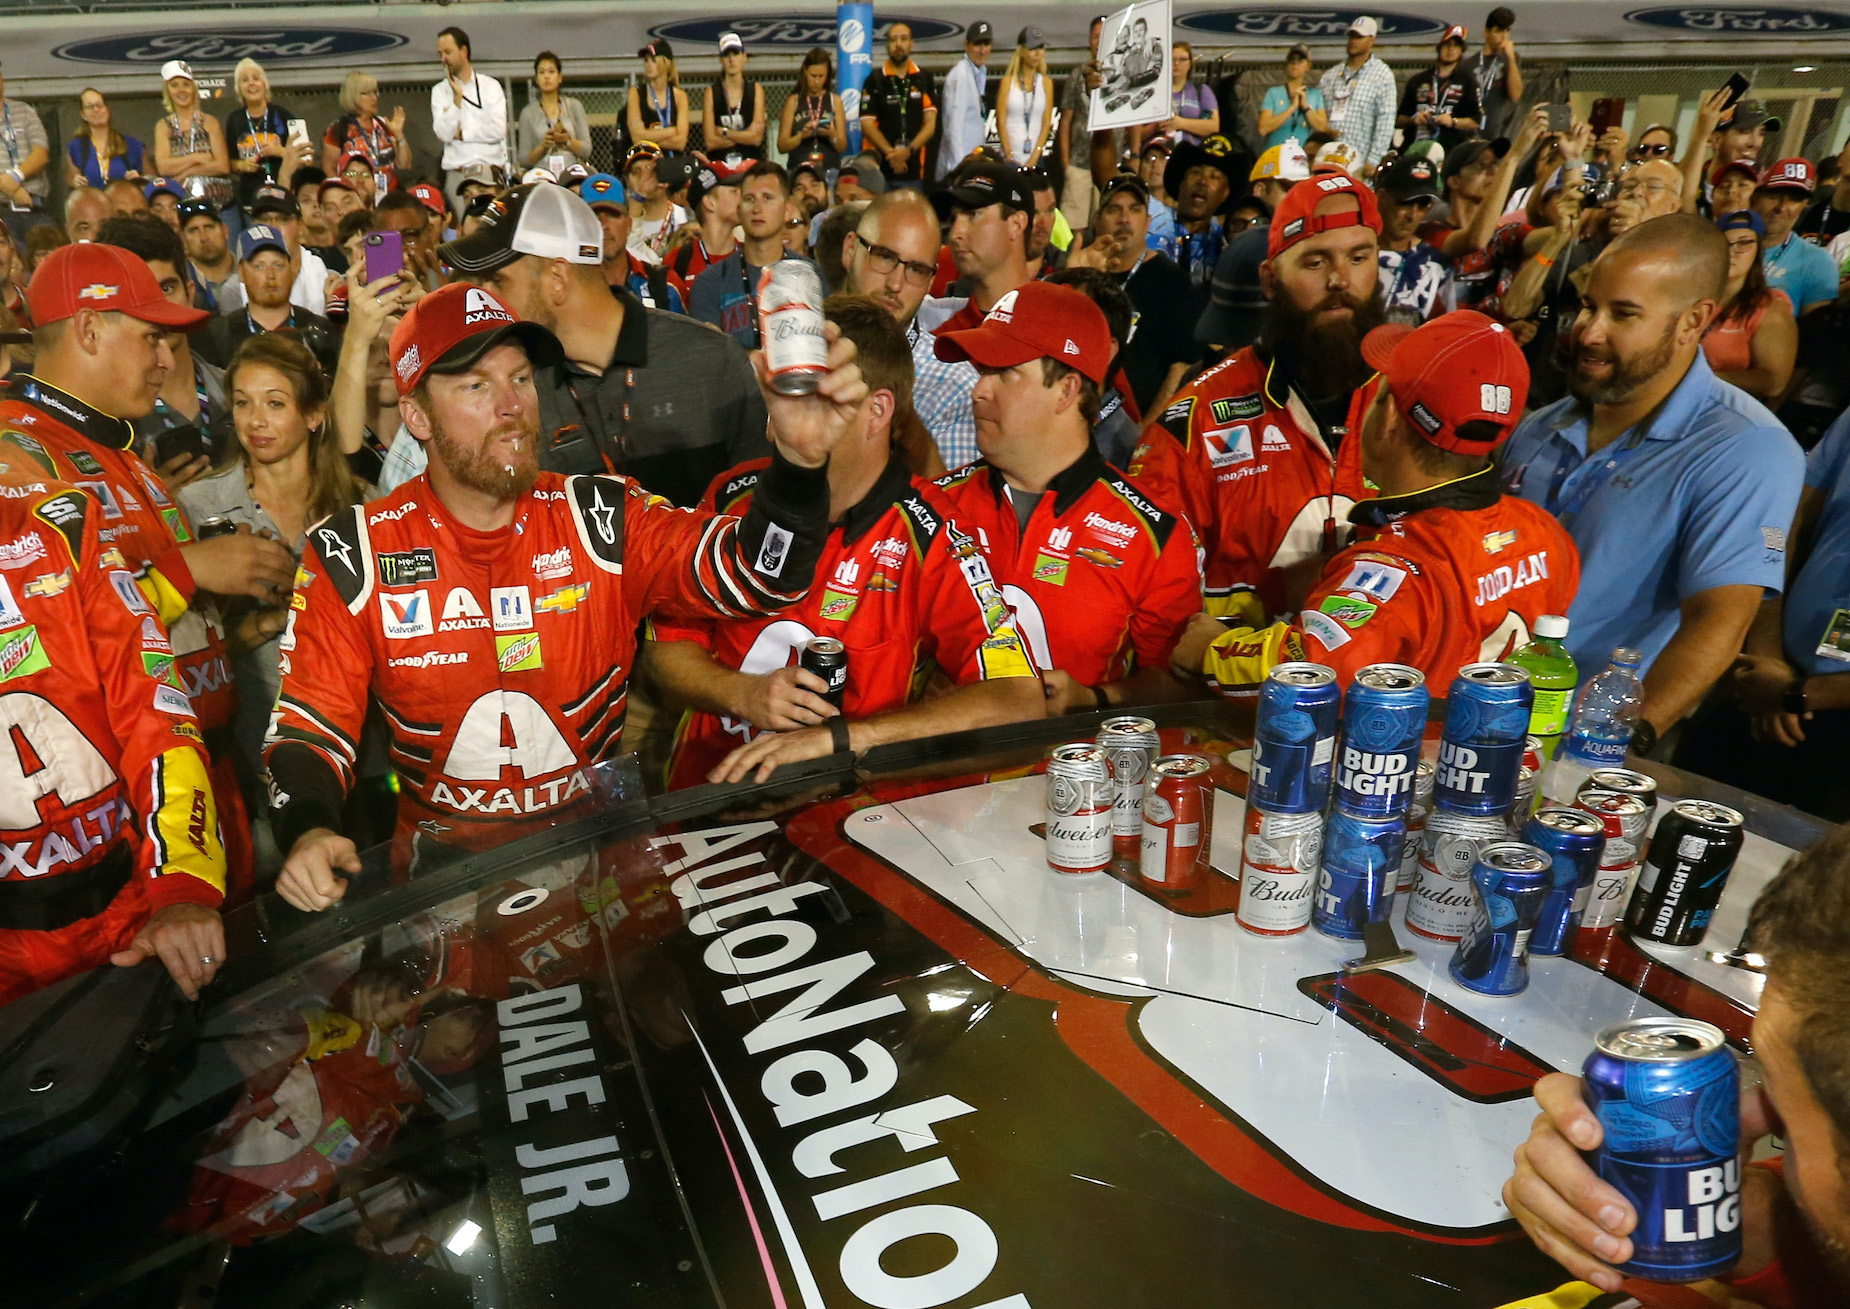 Dale Earnhardt Jr. celebrates a NASCAR win with a beer